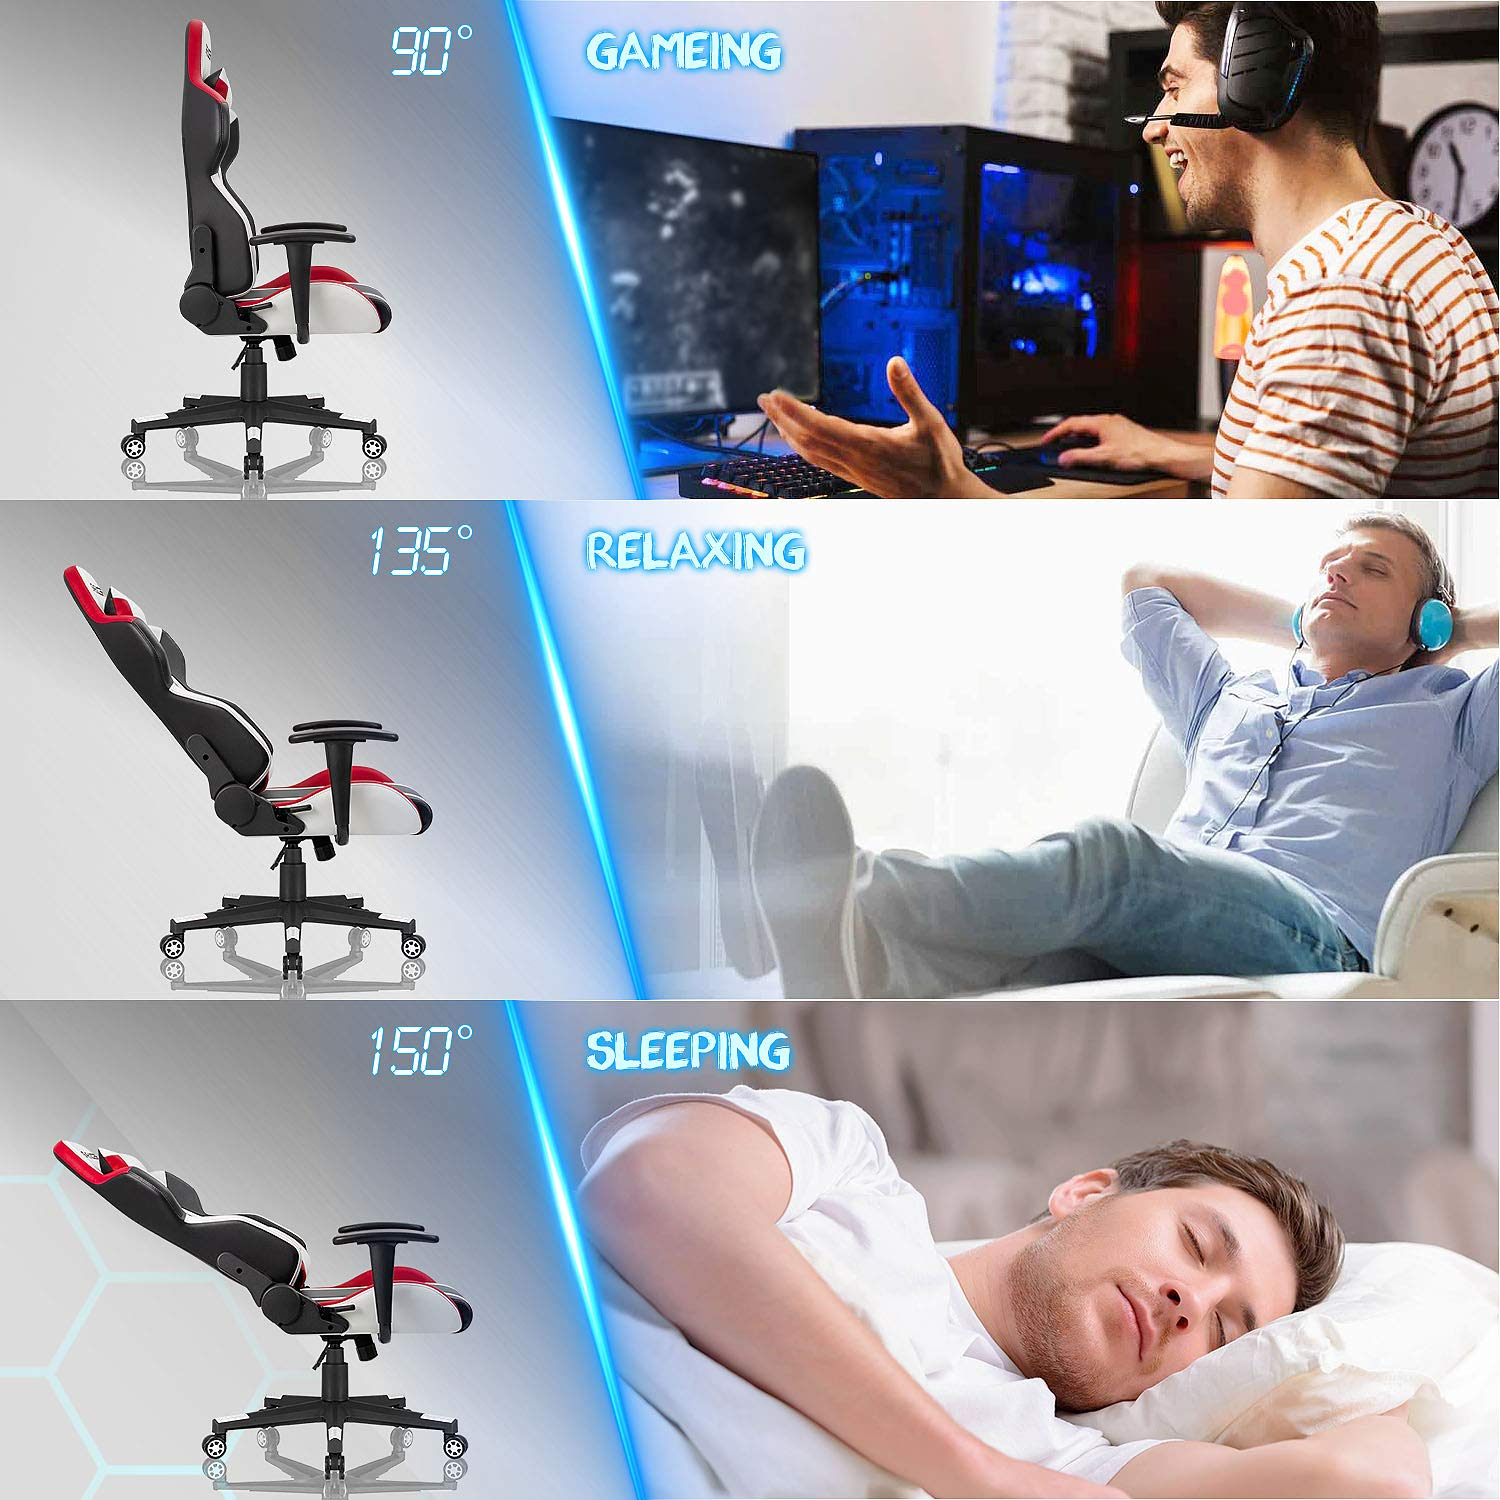 Homall Gaming Chair Racing Style High-Back PU Leather Office Chair Computer Desk Chair Executive and Ergonomic Swivel Chair with Headrest and Lumbar Support (White/Red) by Homall (Image #5)